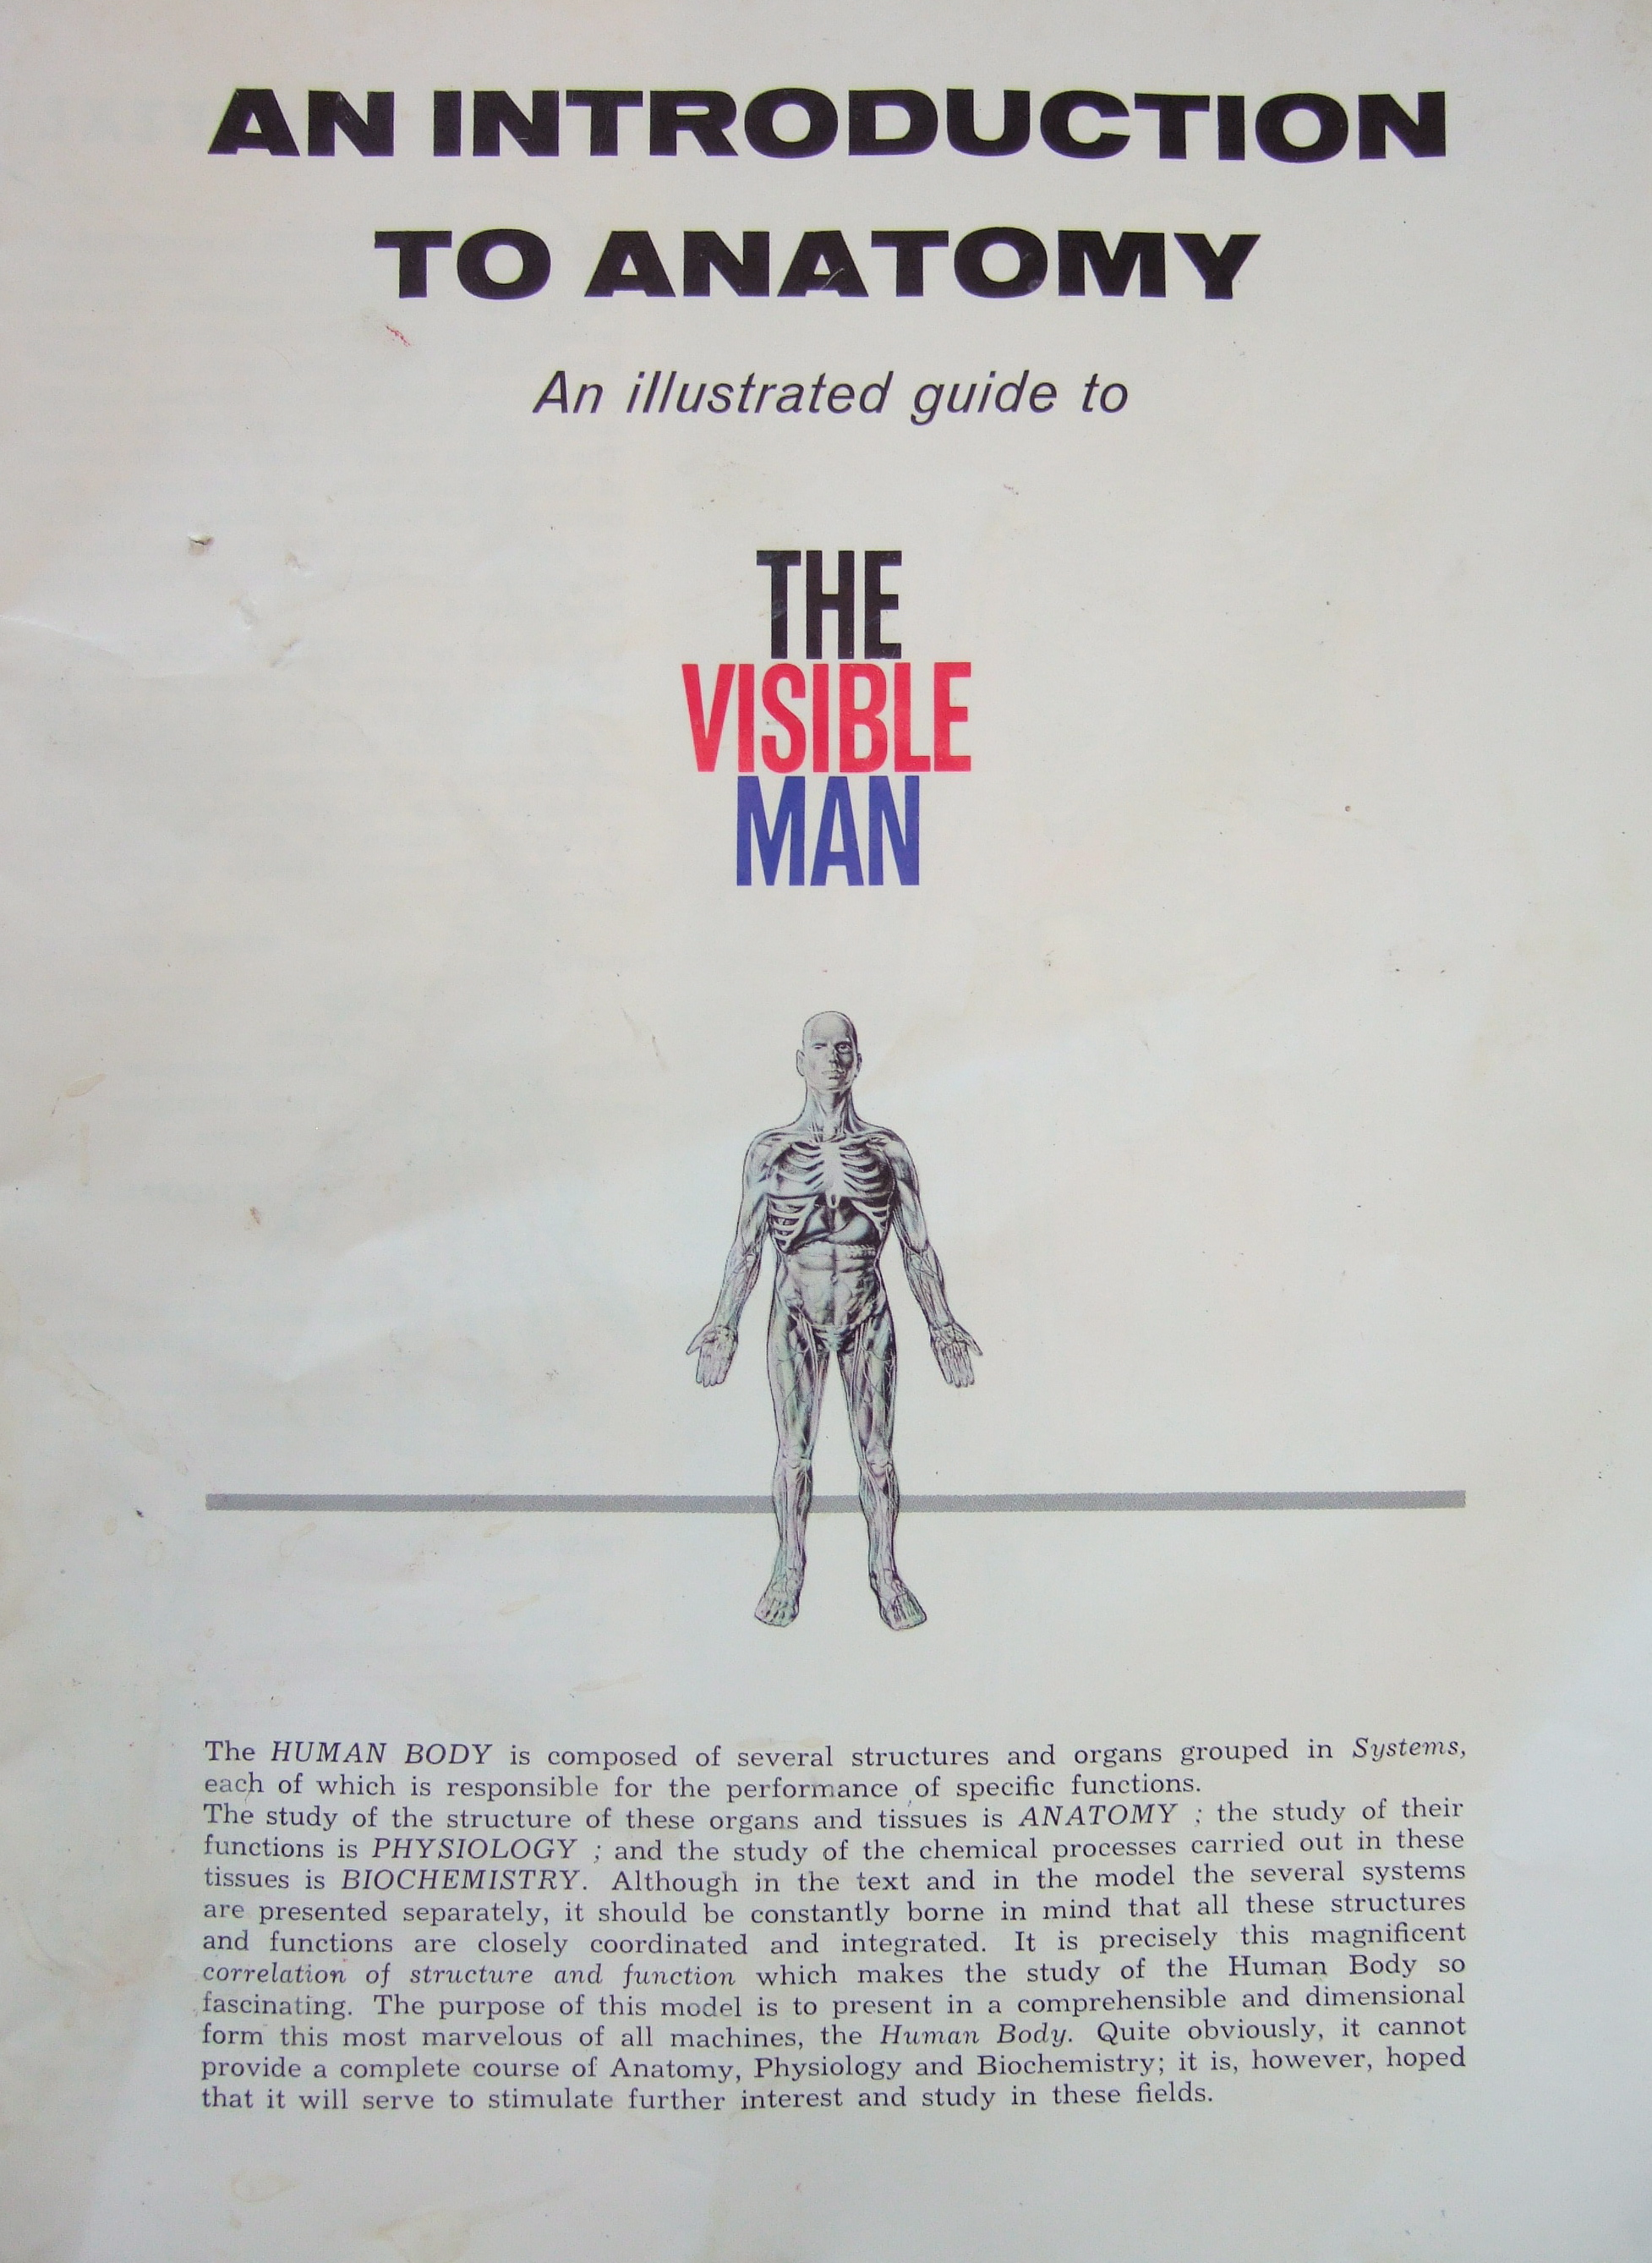 the visible man found | Clive Hicks-Jenkins\' Artlog: